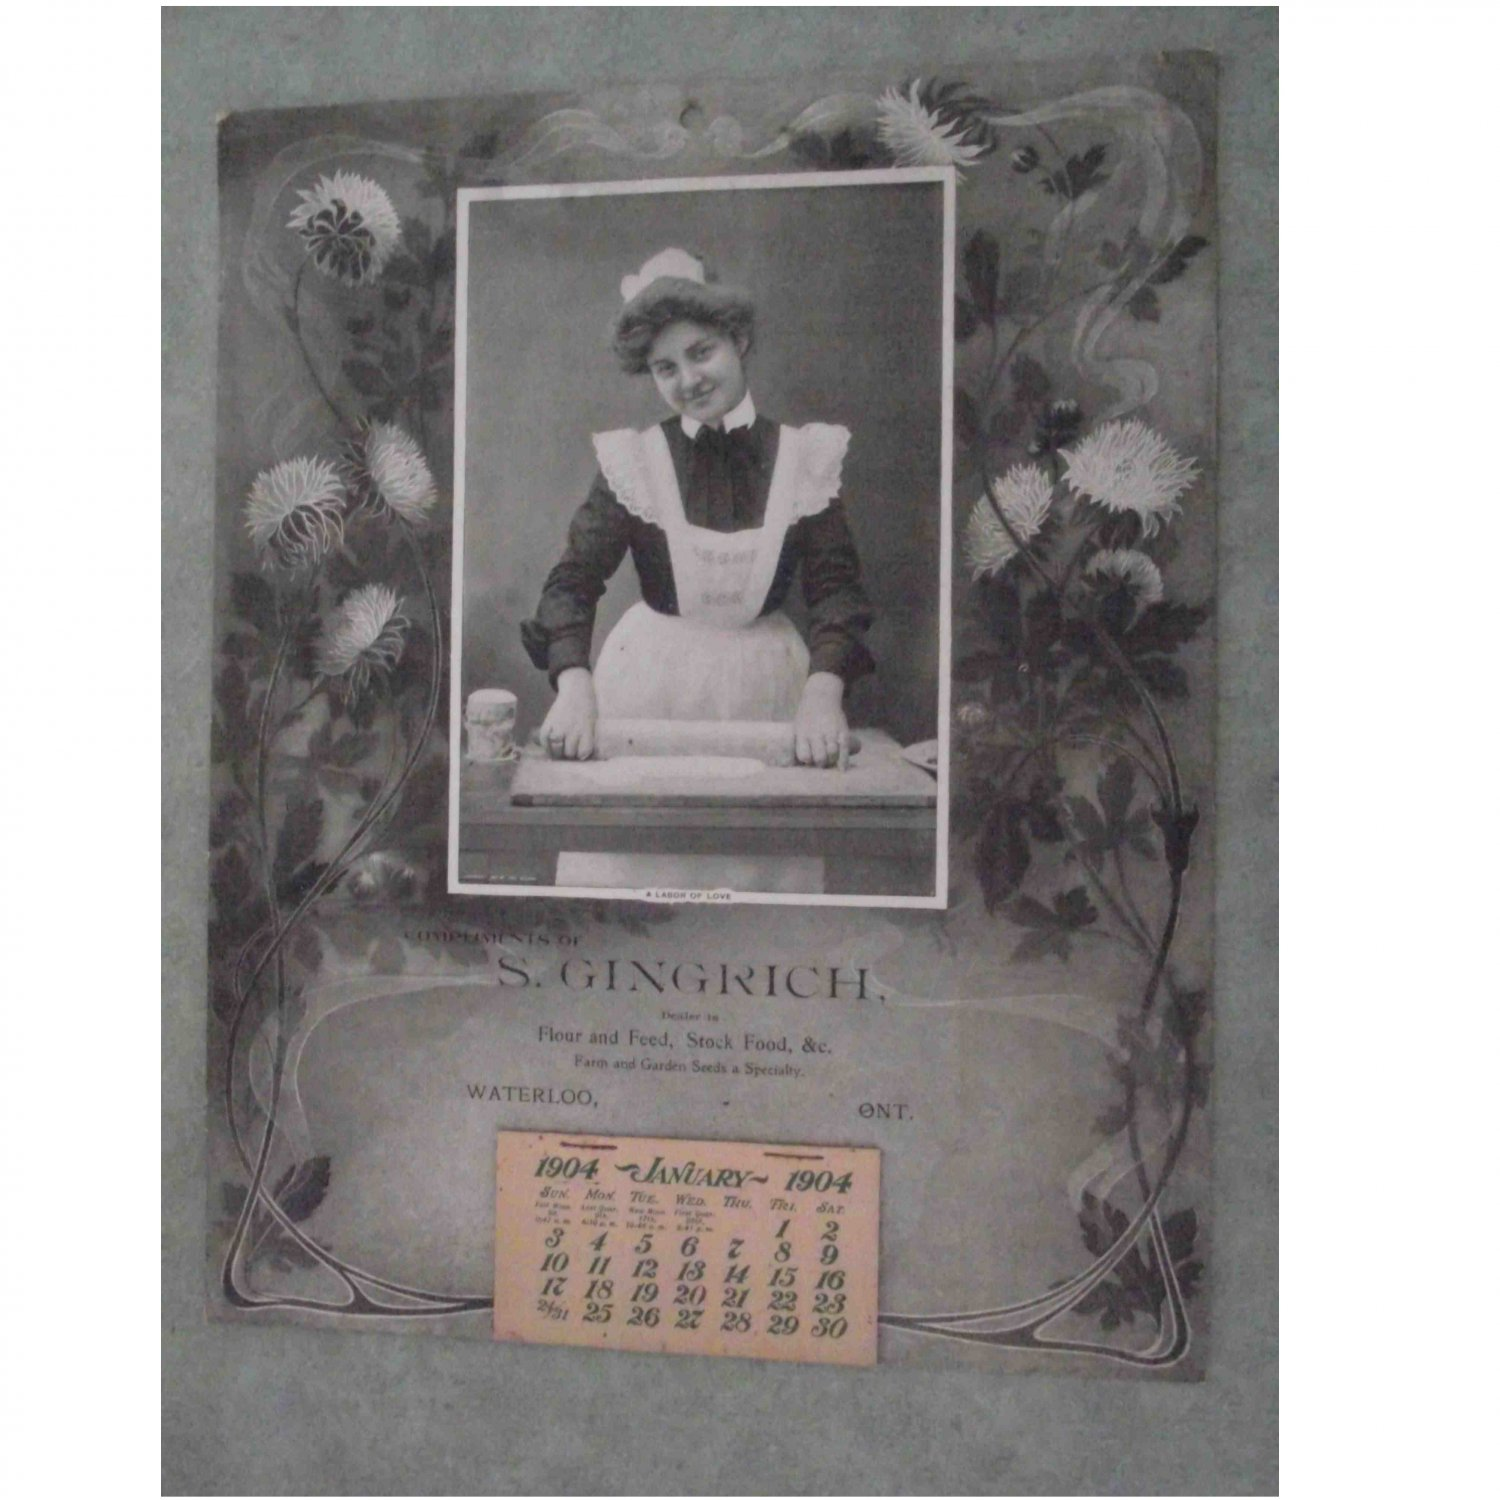 S. Gingerich Waterloo Ontario 1904 Antique Calendar